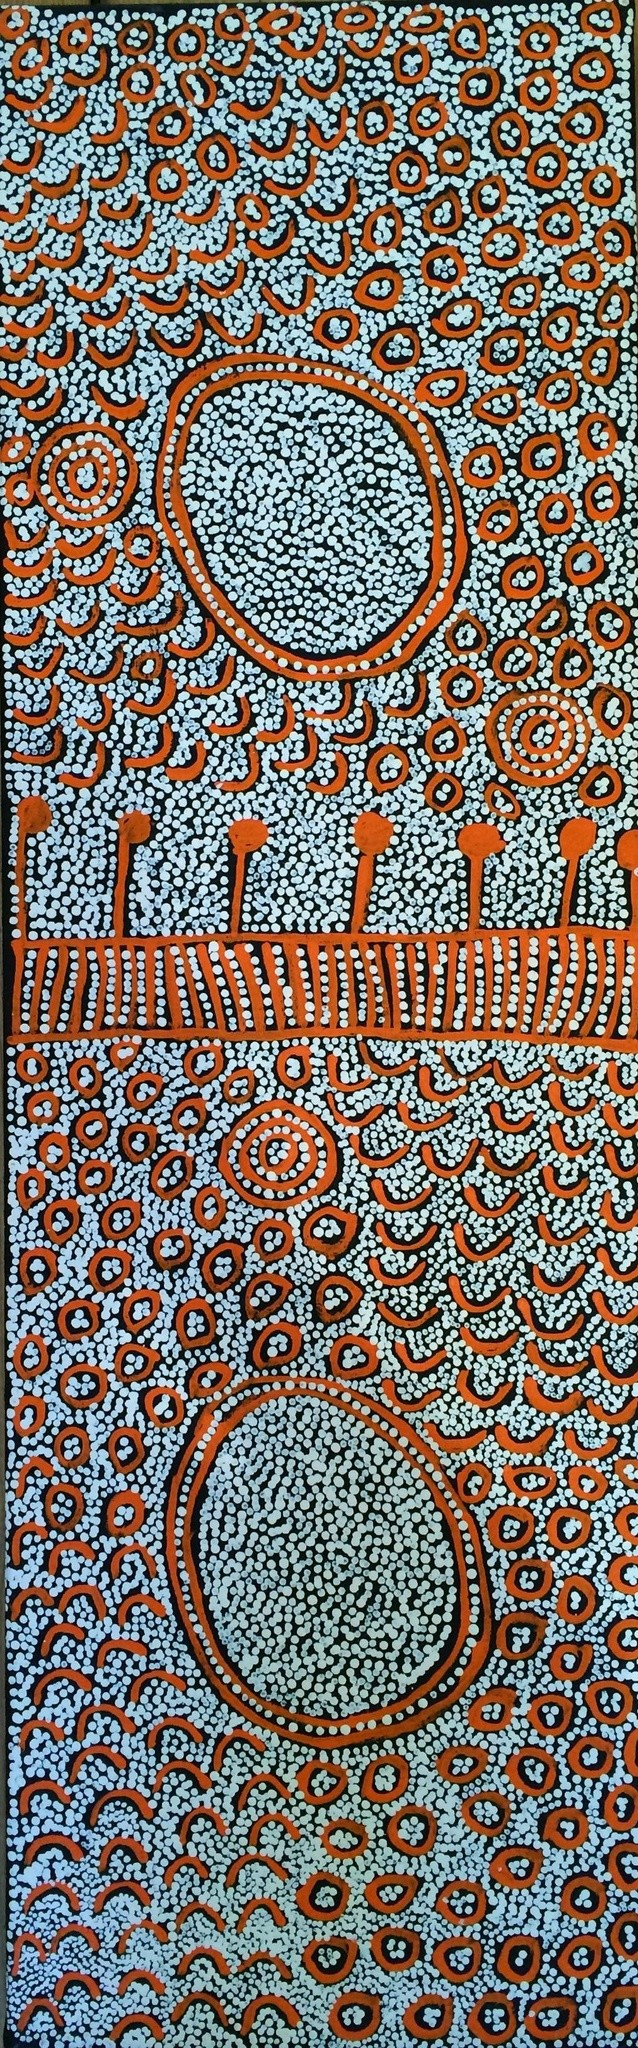 <div class=&#34;artist&#34;><strong>Yinarupa Nangala</strong></div> c 1948 -<div class=&#34;title&#34;>Untitled, 2013</div><div class=&#34;signed_and_dated&#34;>inscribed verso: Papunya Tula Artists 1311088</div><div class=&#34;medium&#34;>synthetic polymer paint on linen</div><div class=&#34;dimensions&#34;>87 x 28 cm<br>34 1/4 x 11 1/8 in</div>